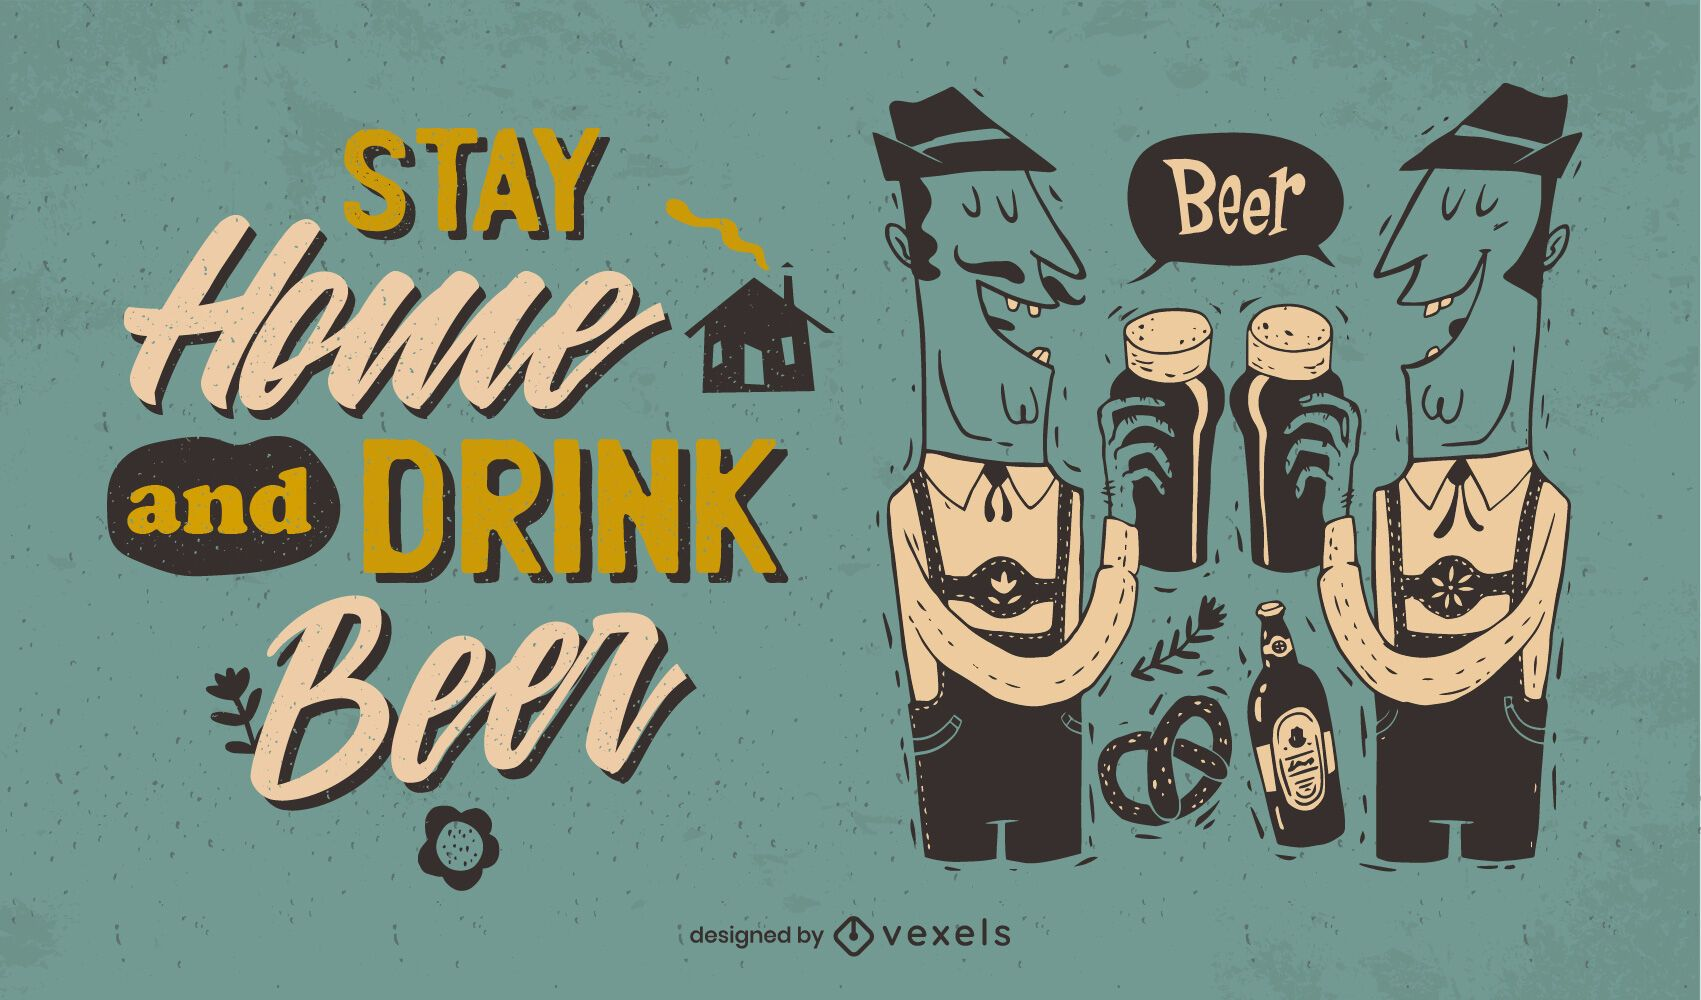 Stay home and drink beer lettering design